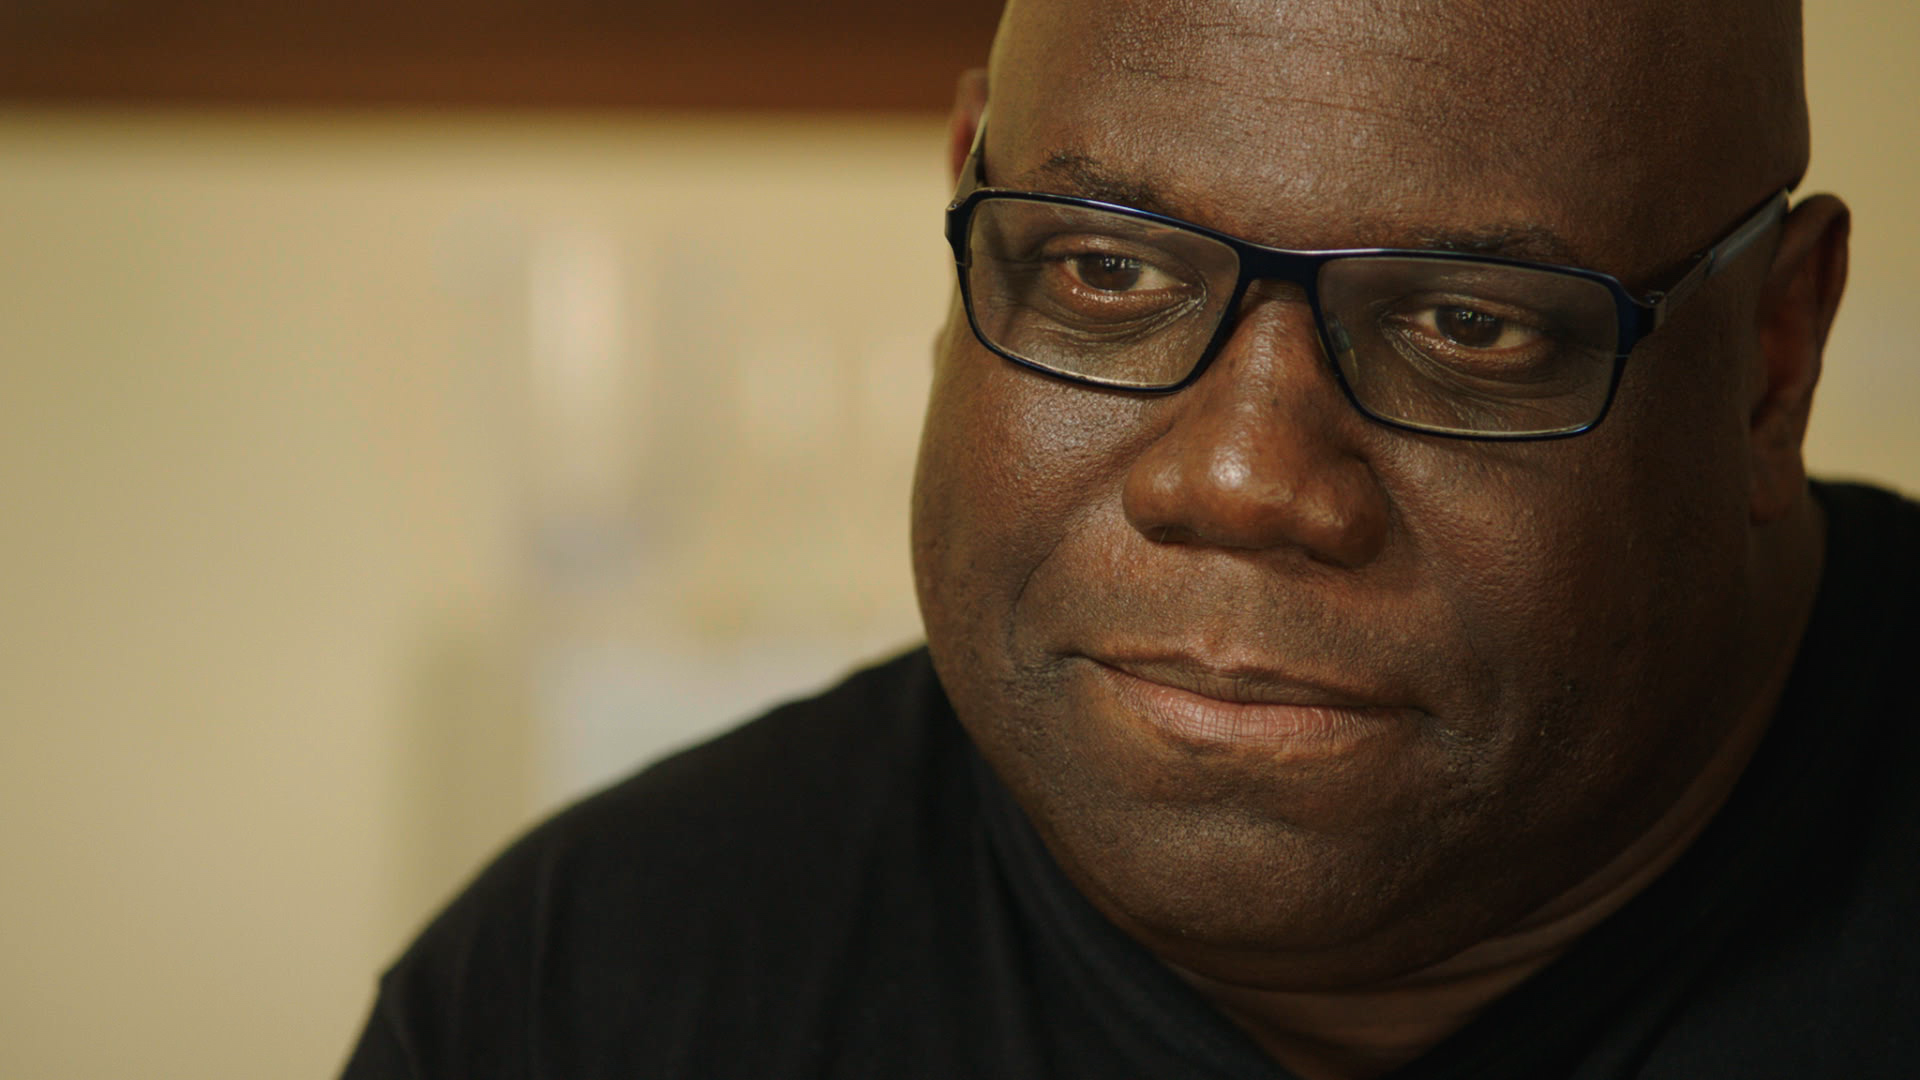 On set with Carl Cox in WHAT WE STARTED - (c) Bert Marcus Productions